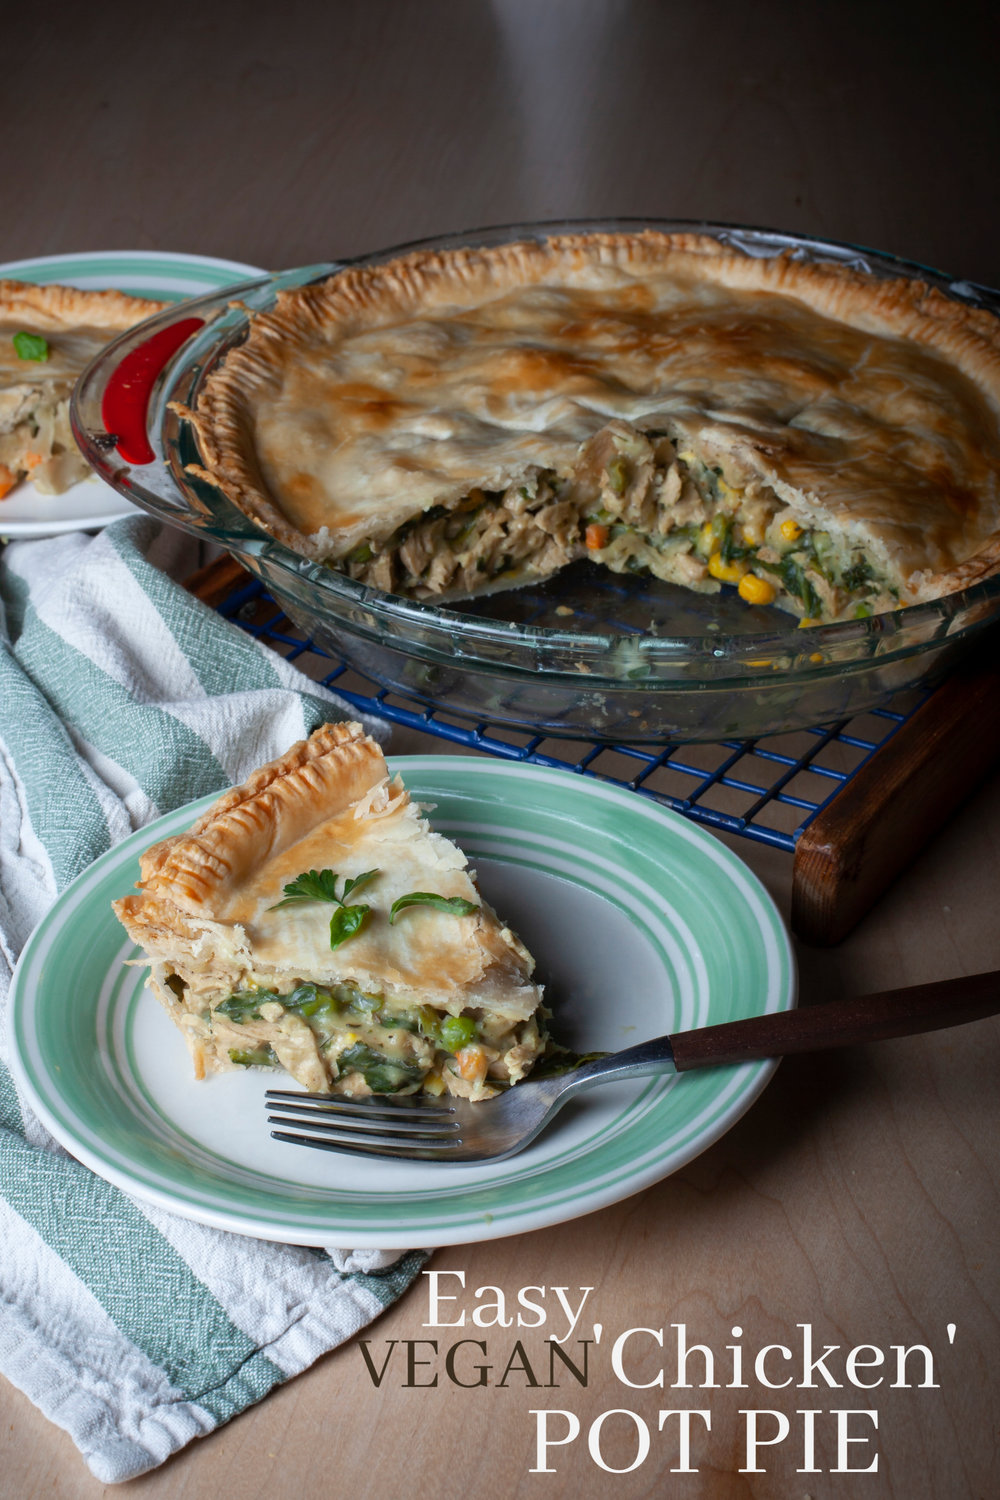 Produce On Parade - Easy Vegan 'Chicken' Pot Pie - Everytime I make this pot pie it gets rave reviews. It's really great with vegan chicken, especially for omnivores but of course it can be left out or replaced with tofu if you desire. I make my own vegan condensed soup to add to mixed vegetables and fresh spinach for a delicious filling. This dish is so easy and it's sure to be a big hit!